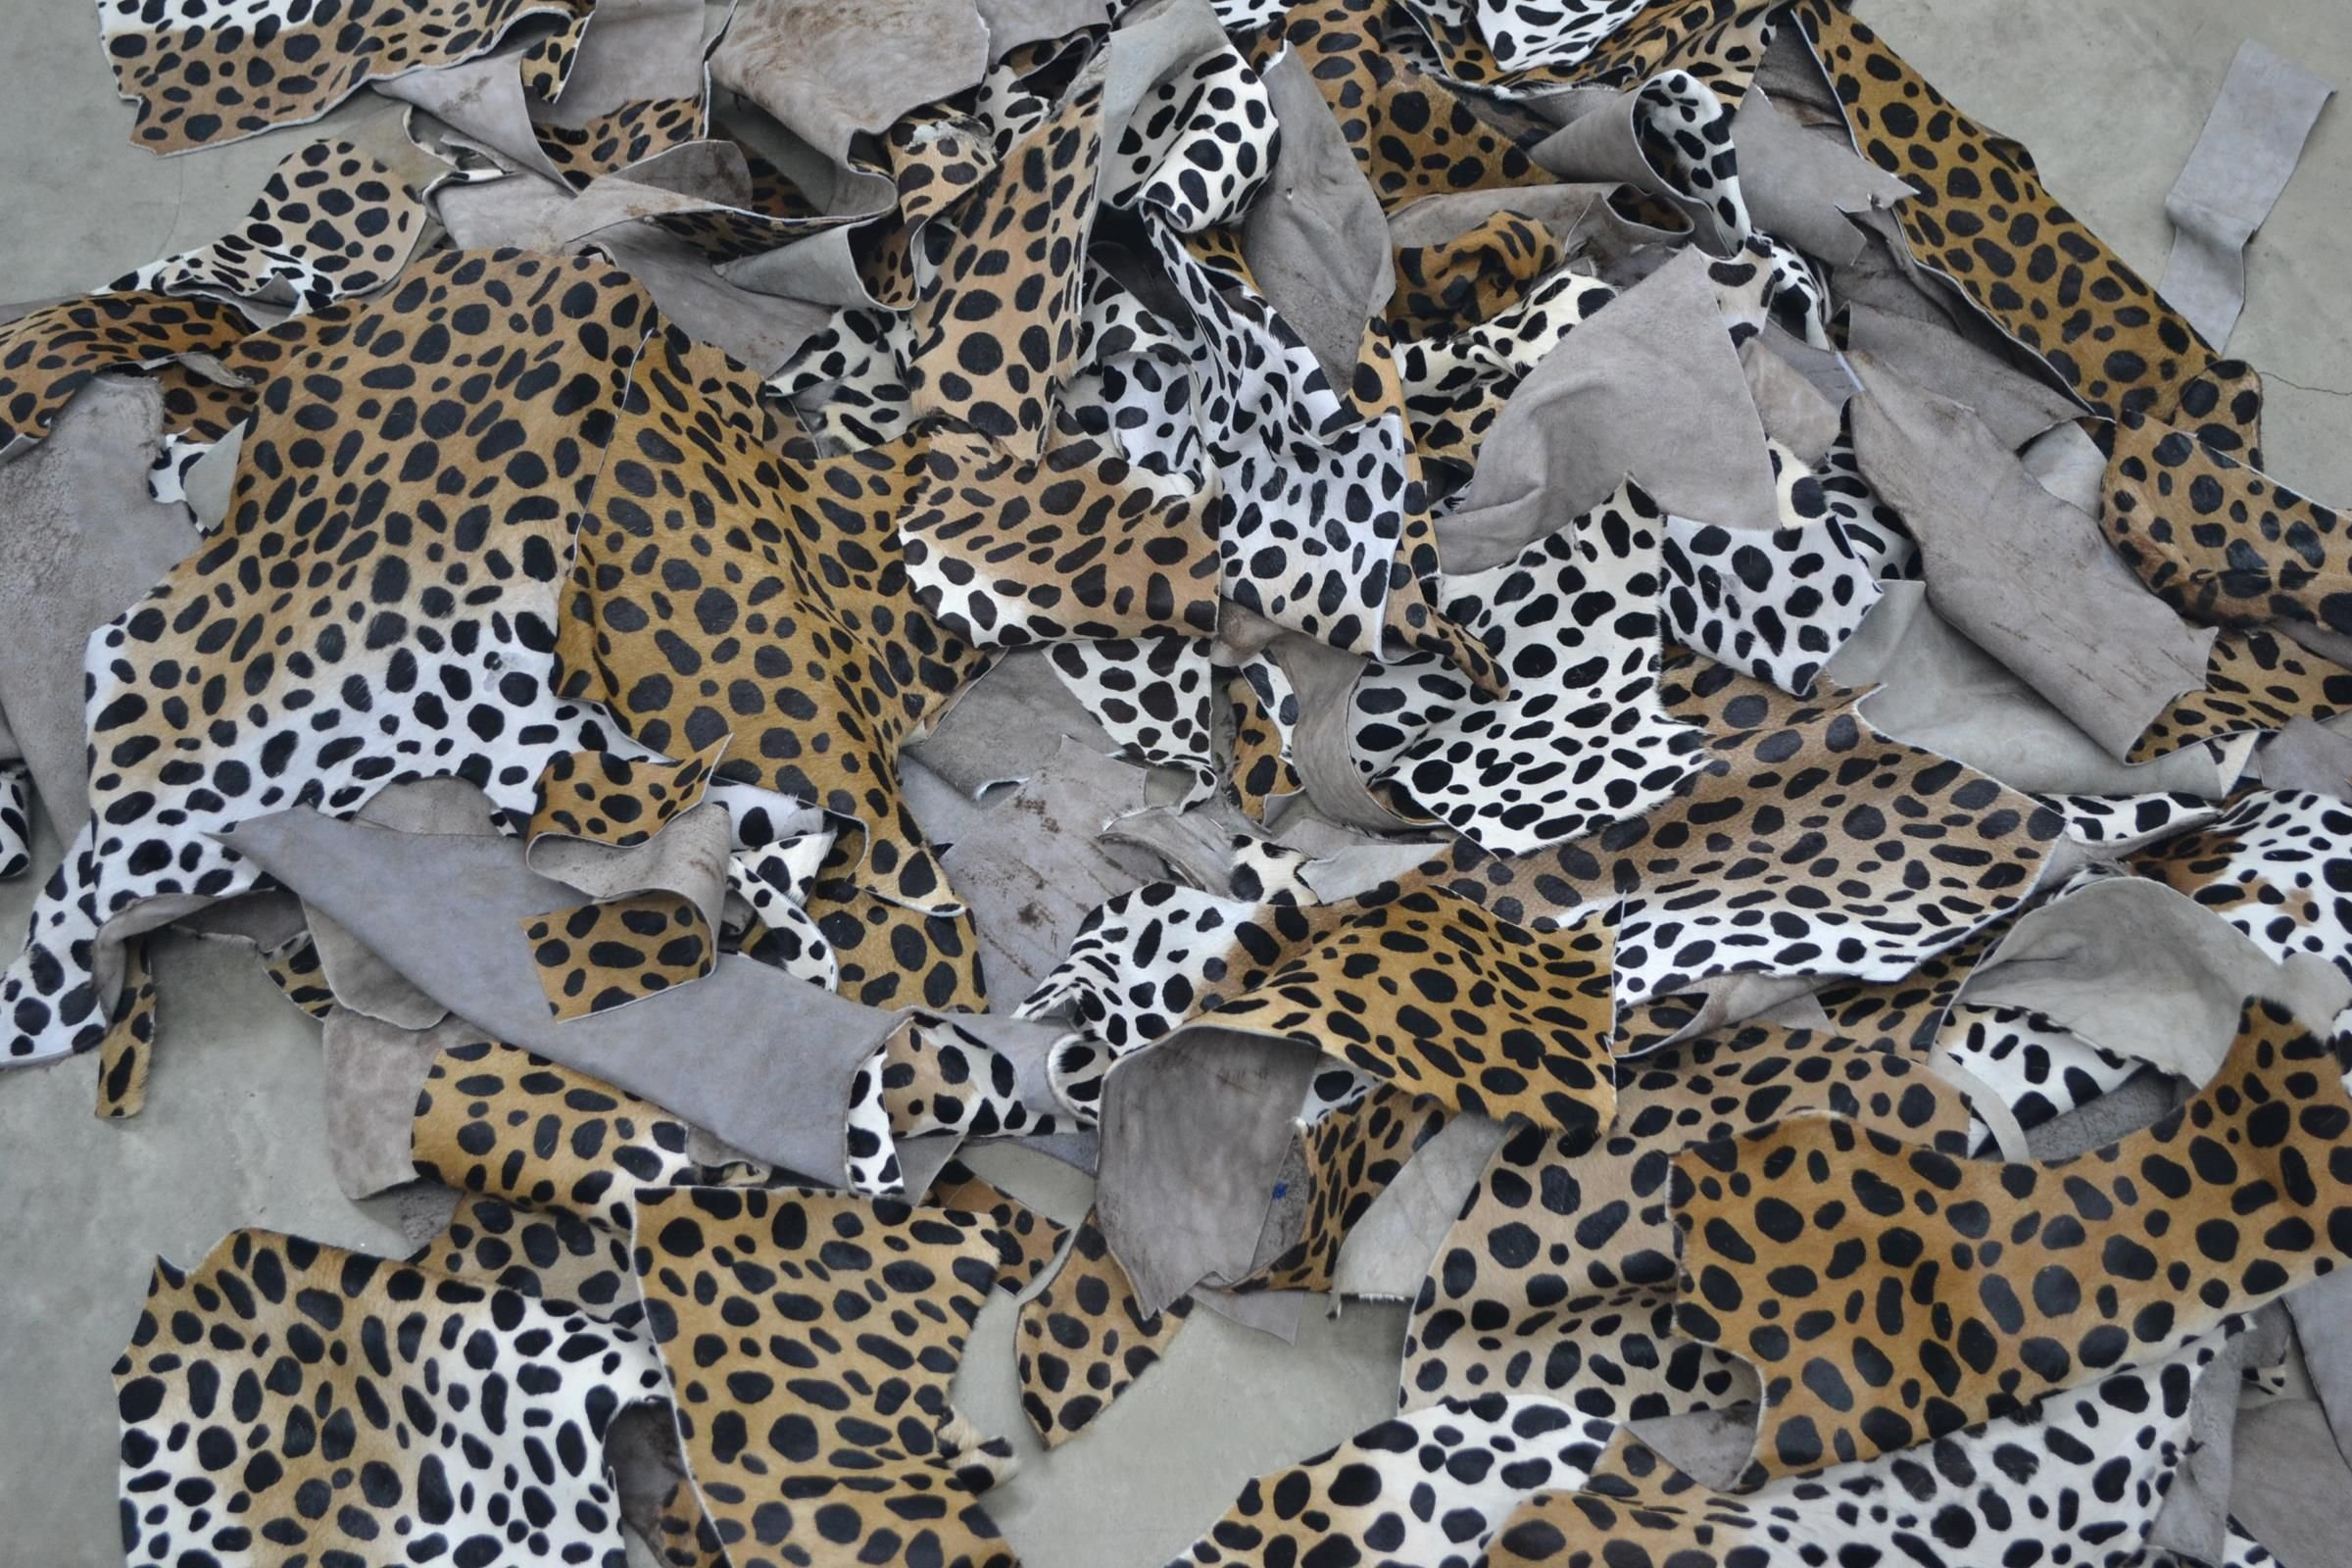 Leather Exotic Scrap 1 pound Hair on Cowhide remnants Cheetah print (38745: )